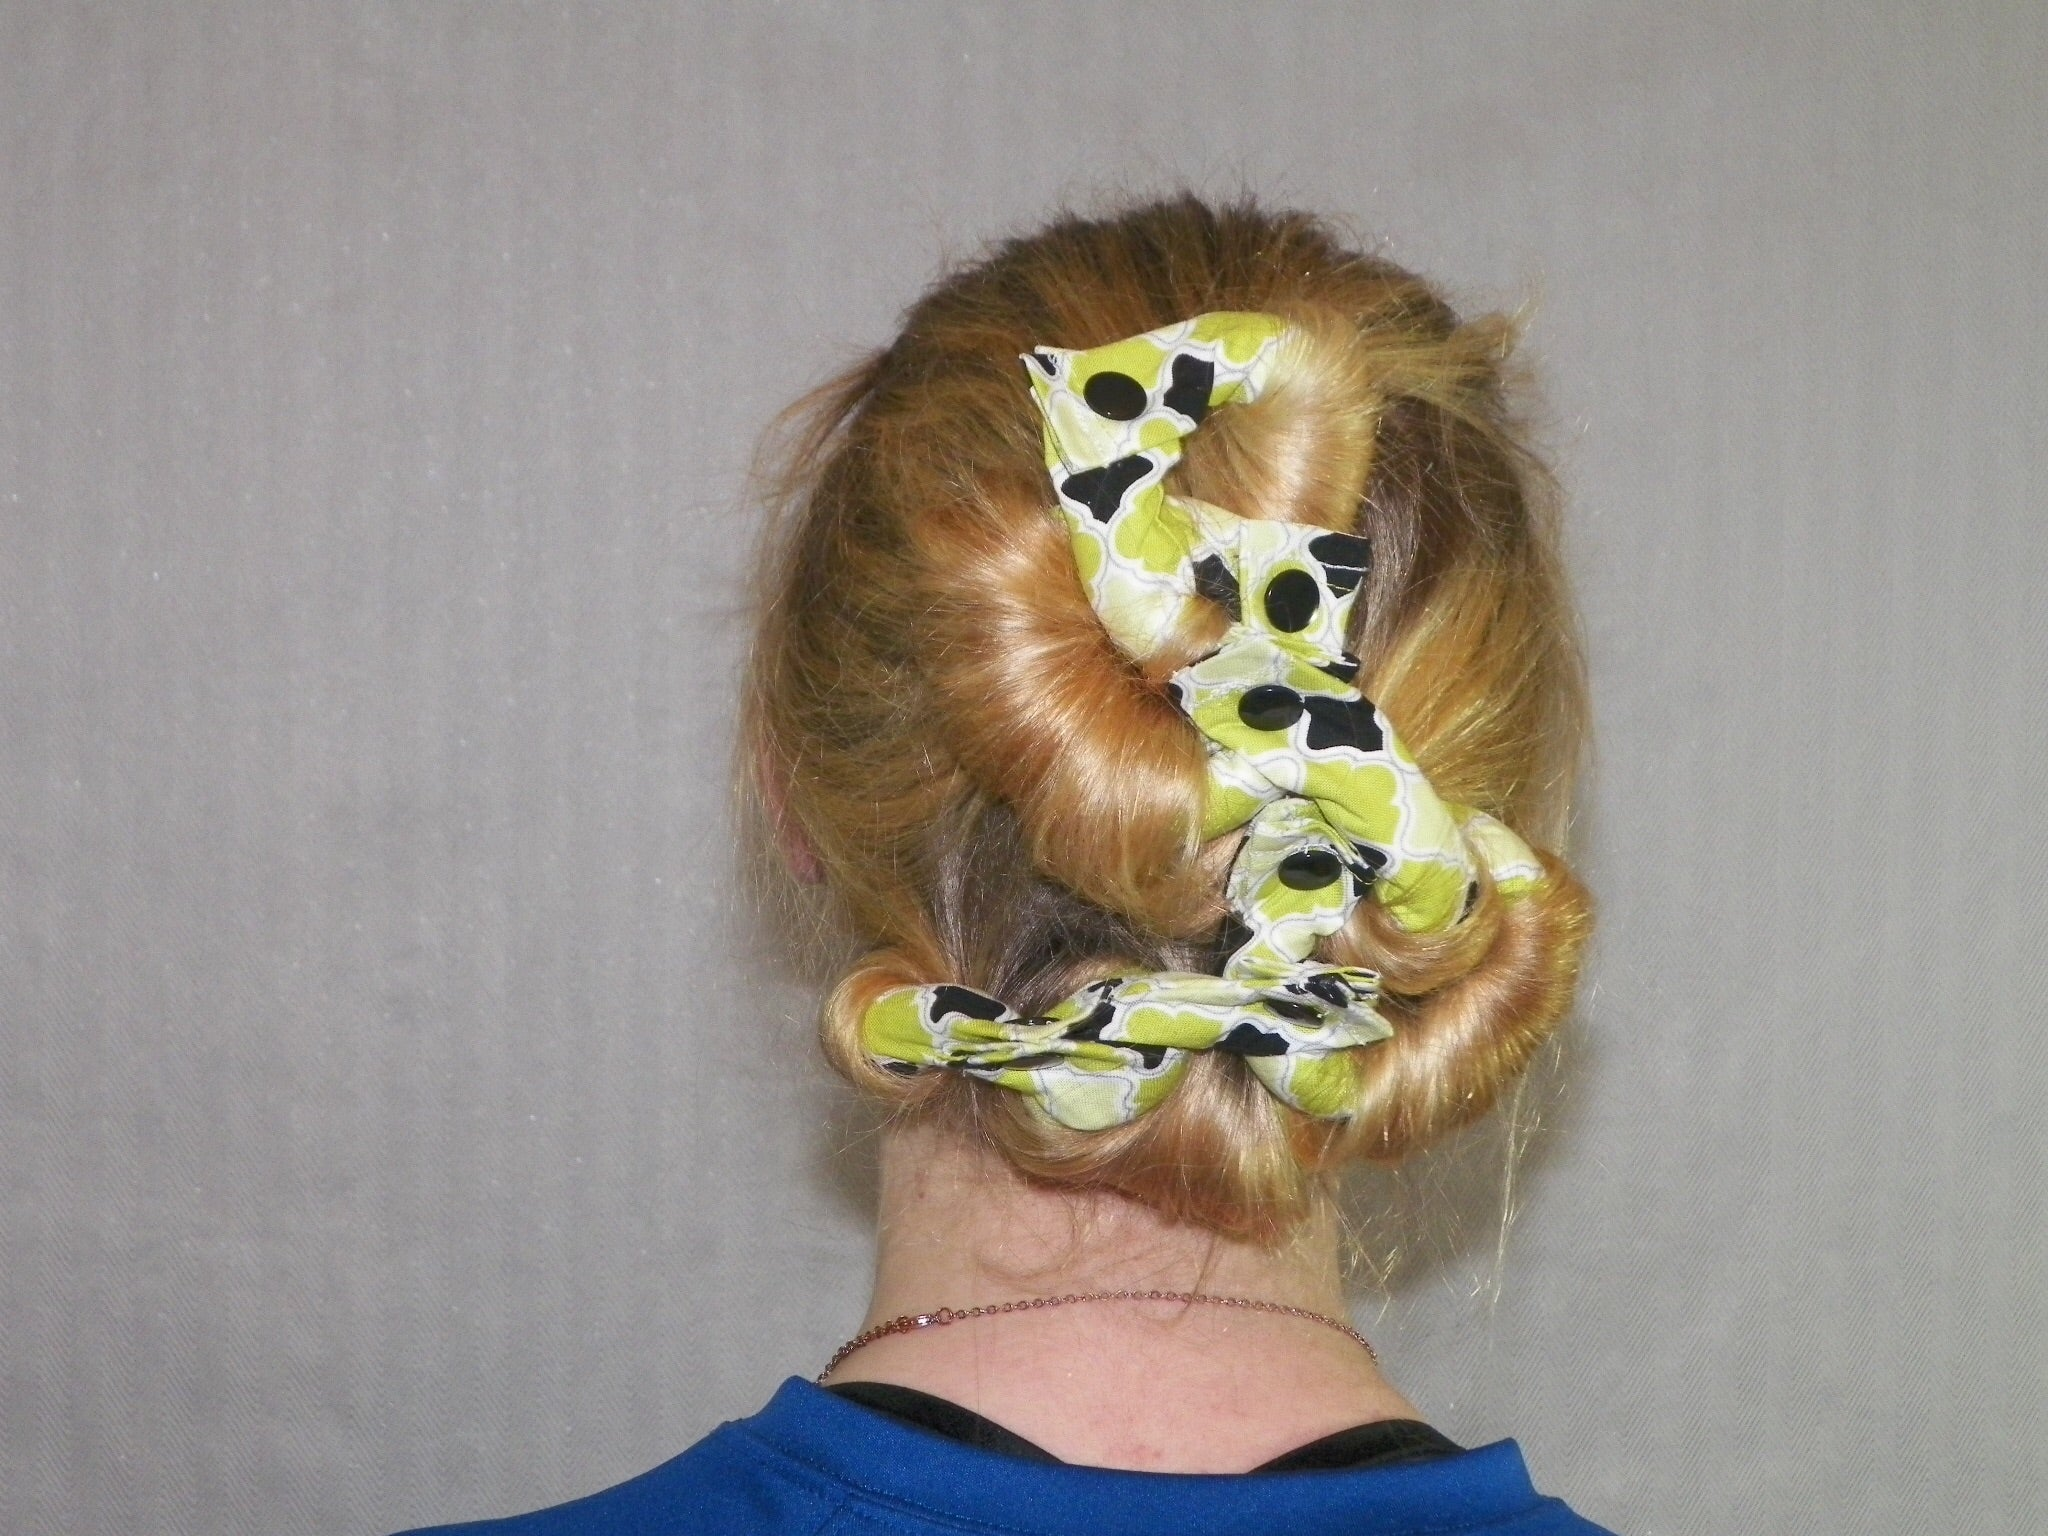 9 piece Lime Green and Black Fabric Hair Rollers/Hair Curlers/Hair Accessories - My Easy Curls